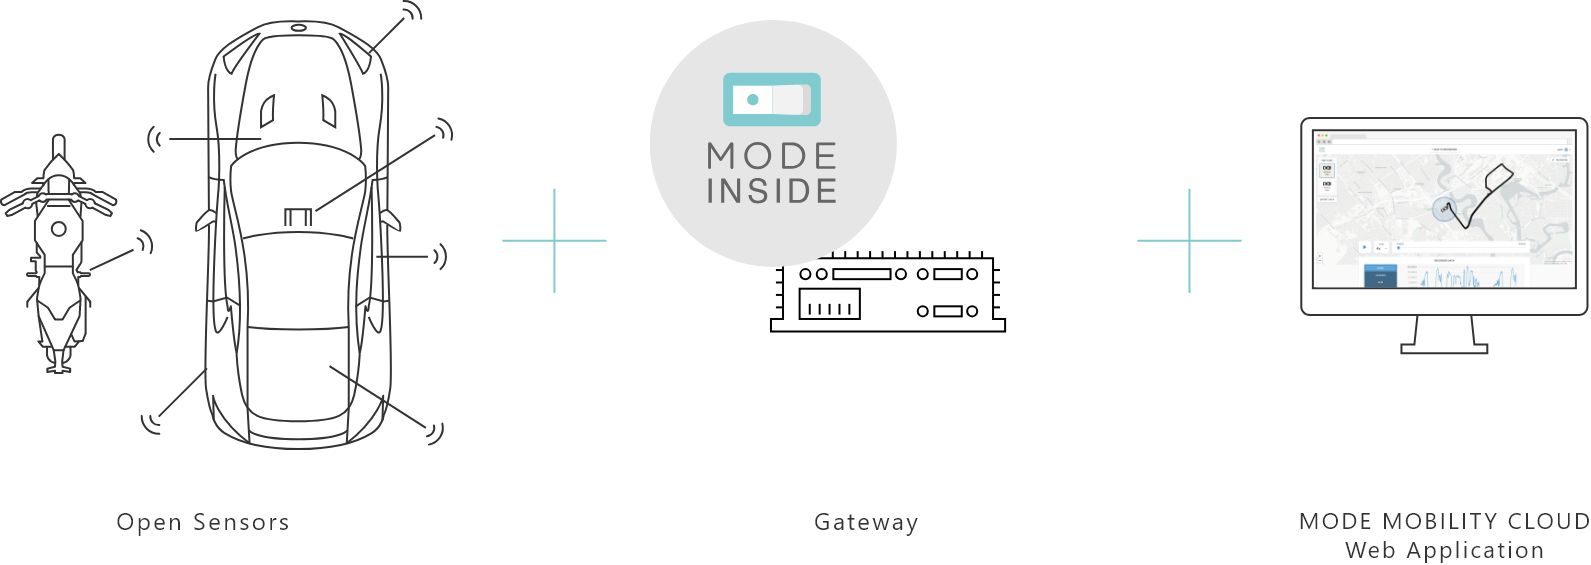 MODE MOBILITY CLOUD 評価キット